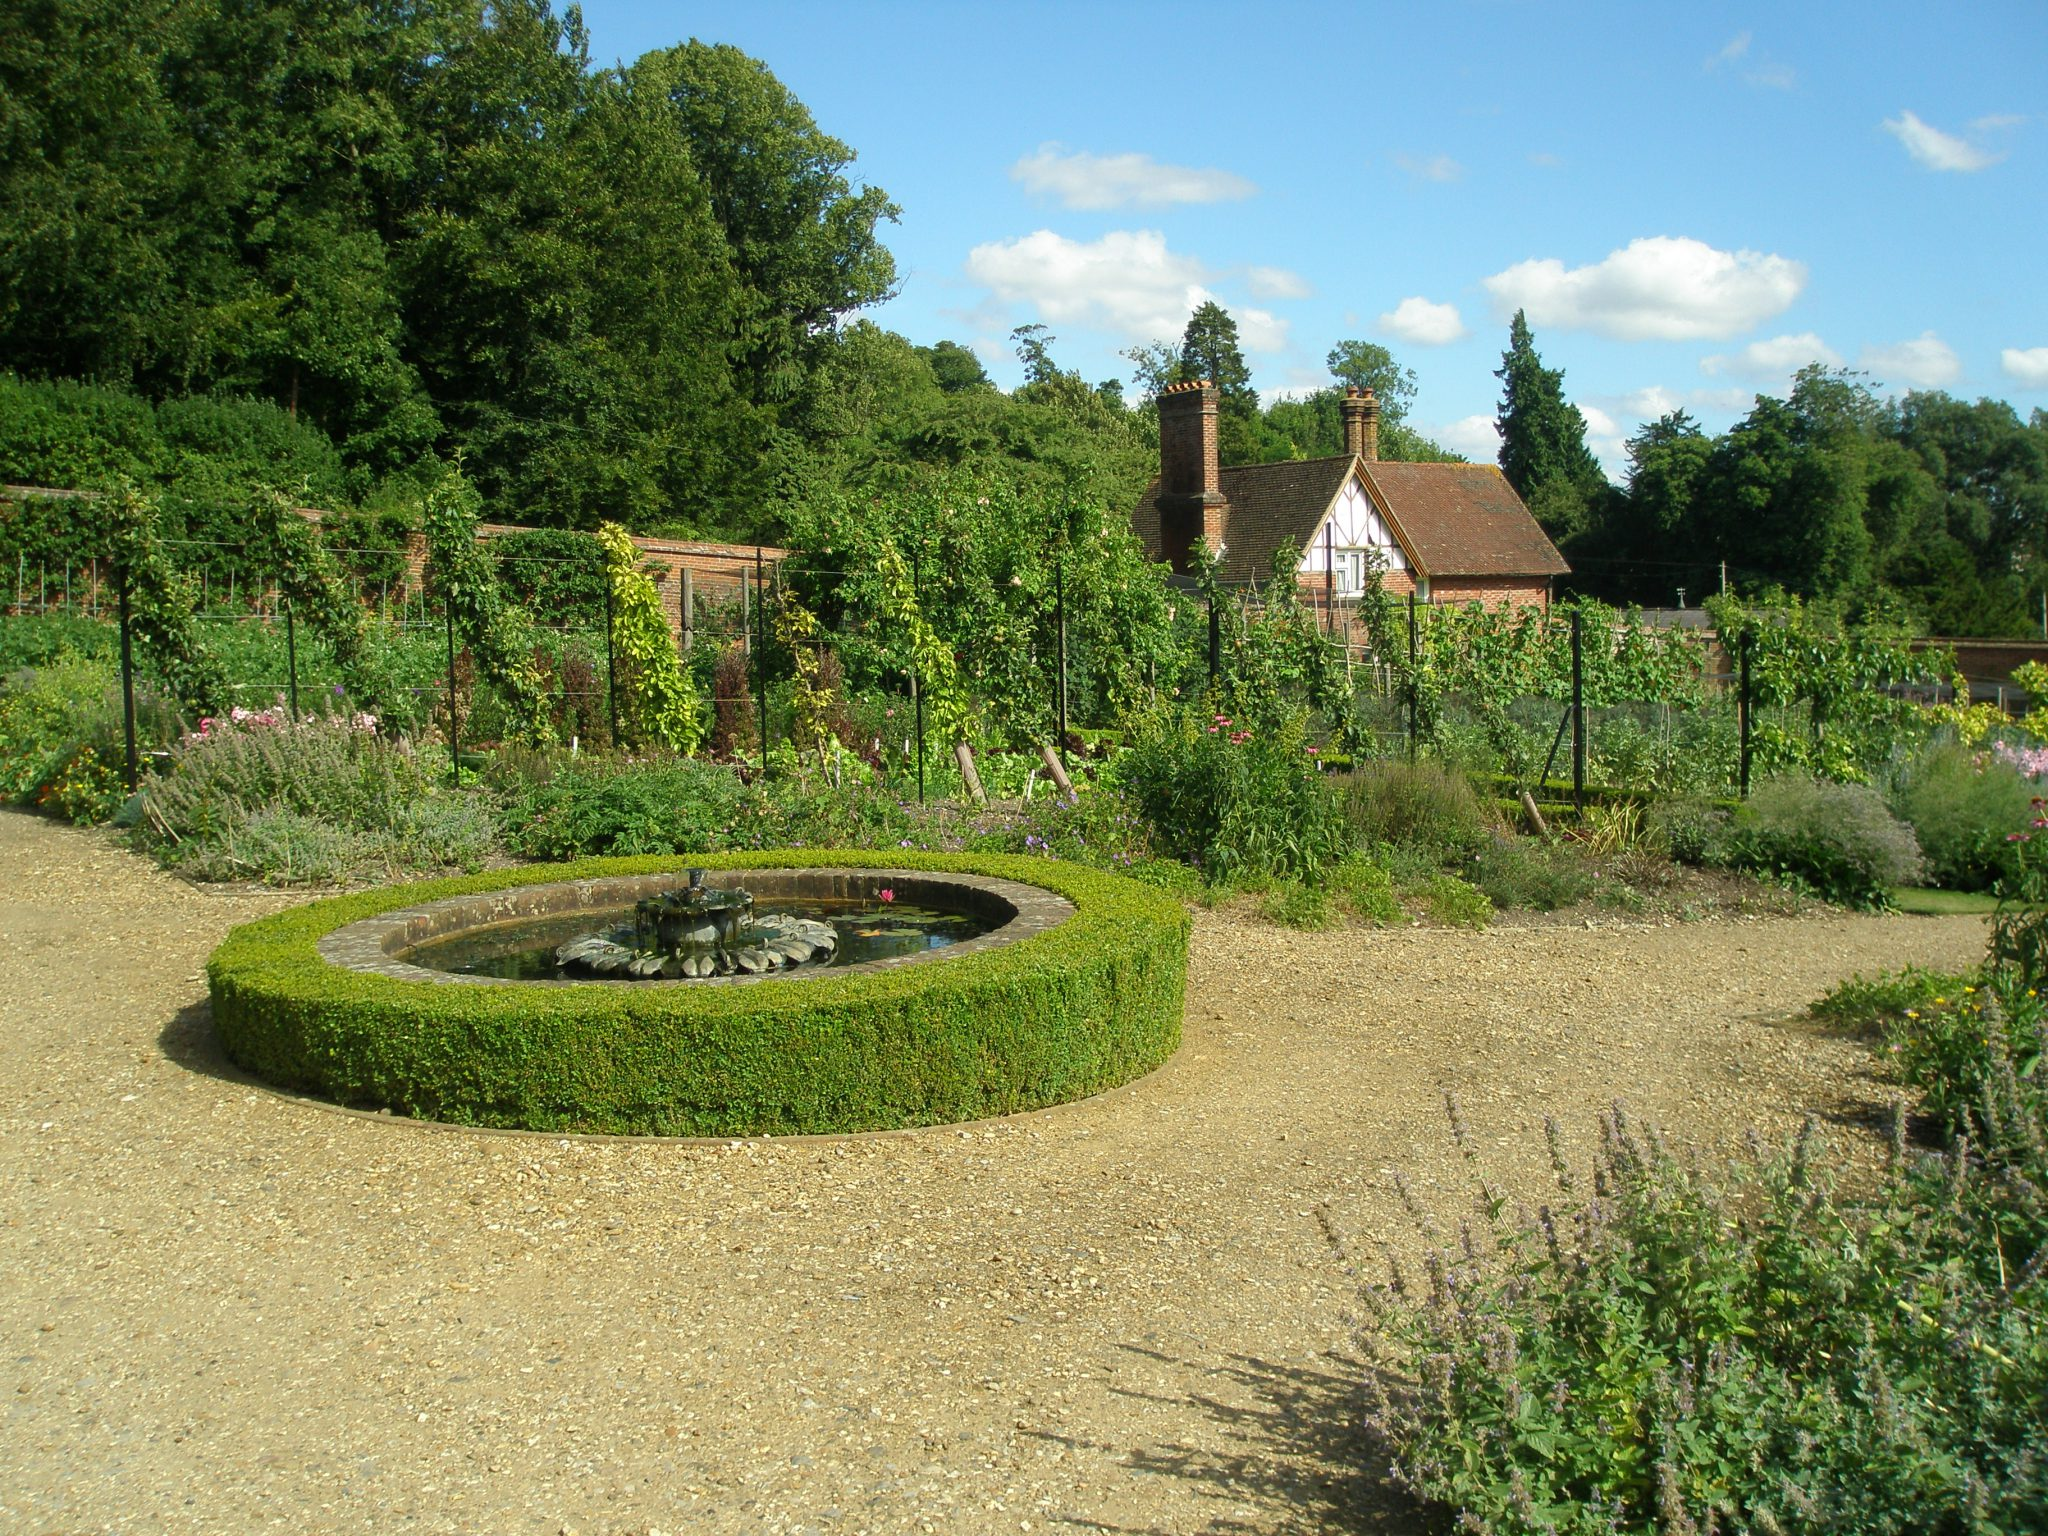 You can see from the contours of the box hedge how sloped the Walled Garden is.